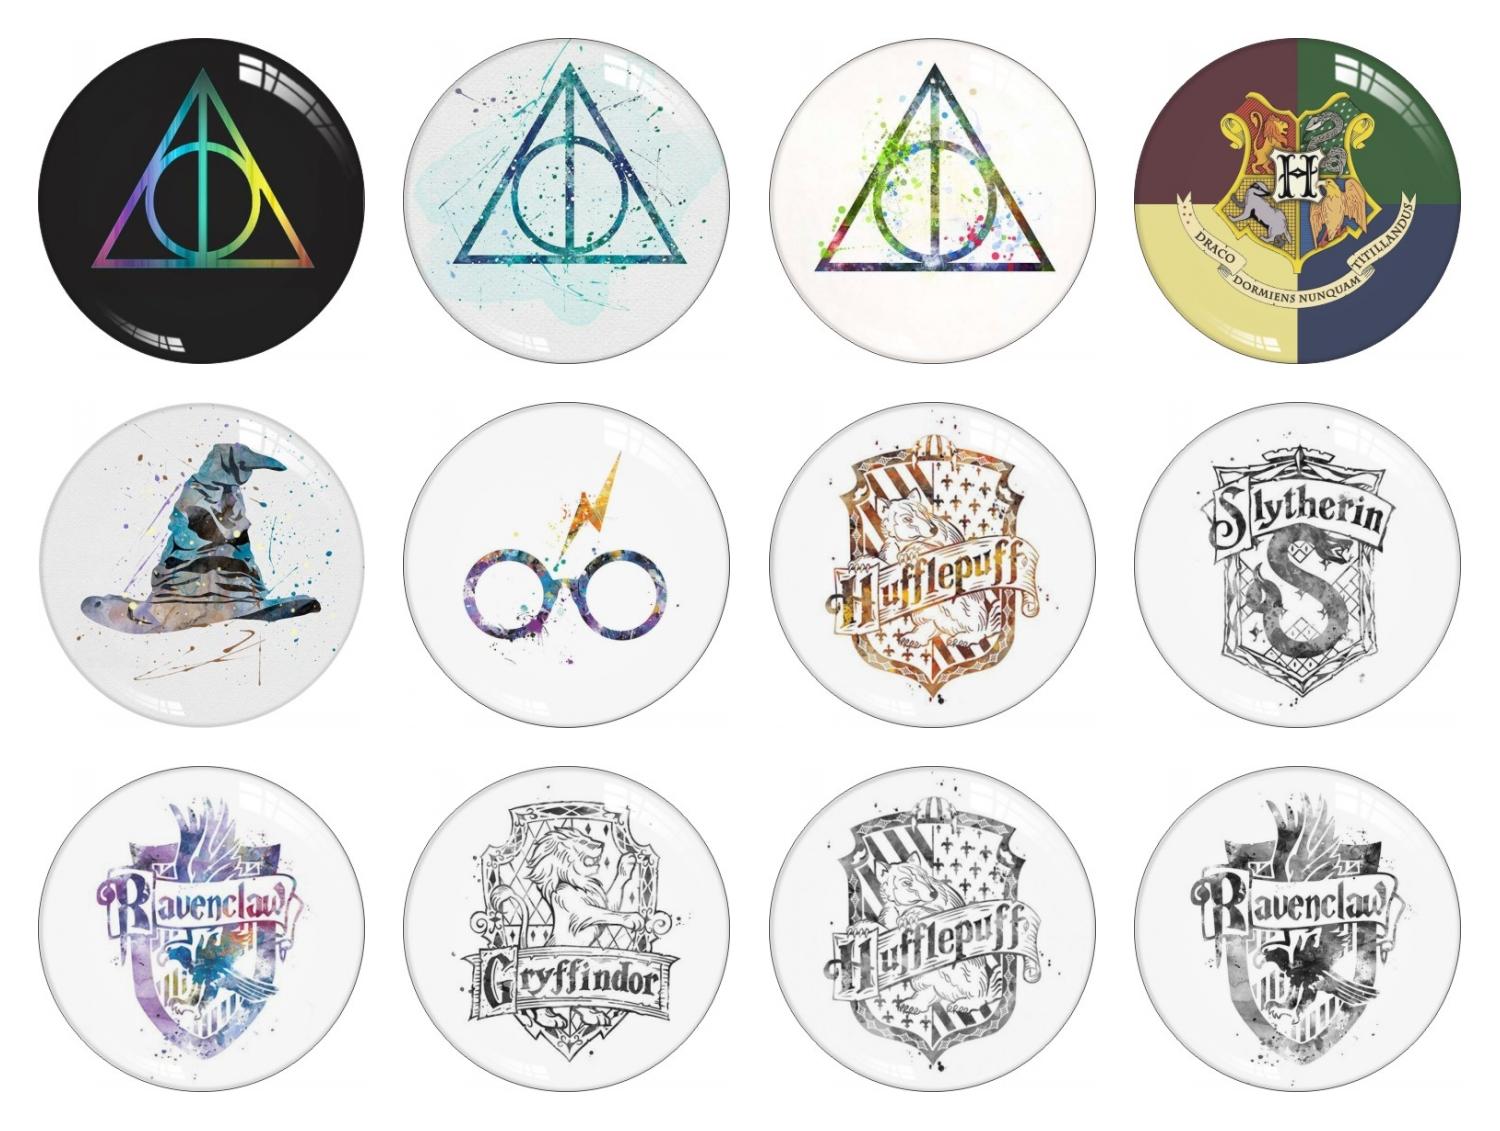 Potter Badge Glass Snap Button Jewelry Round Photo Cabochon FlatBack 10mm 12mm 14mm 16mm 18mm 20mm 25mm 30mm DIY Jewelry Making